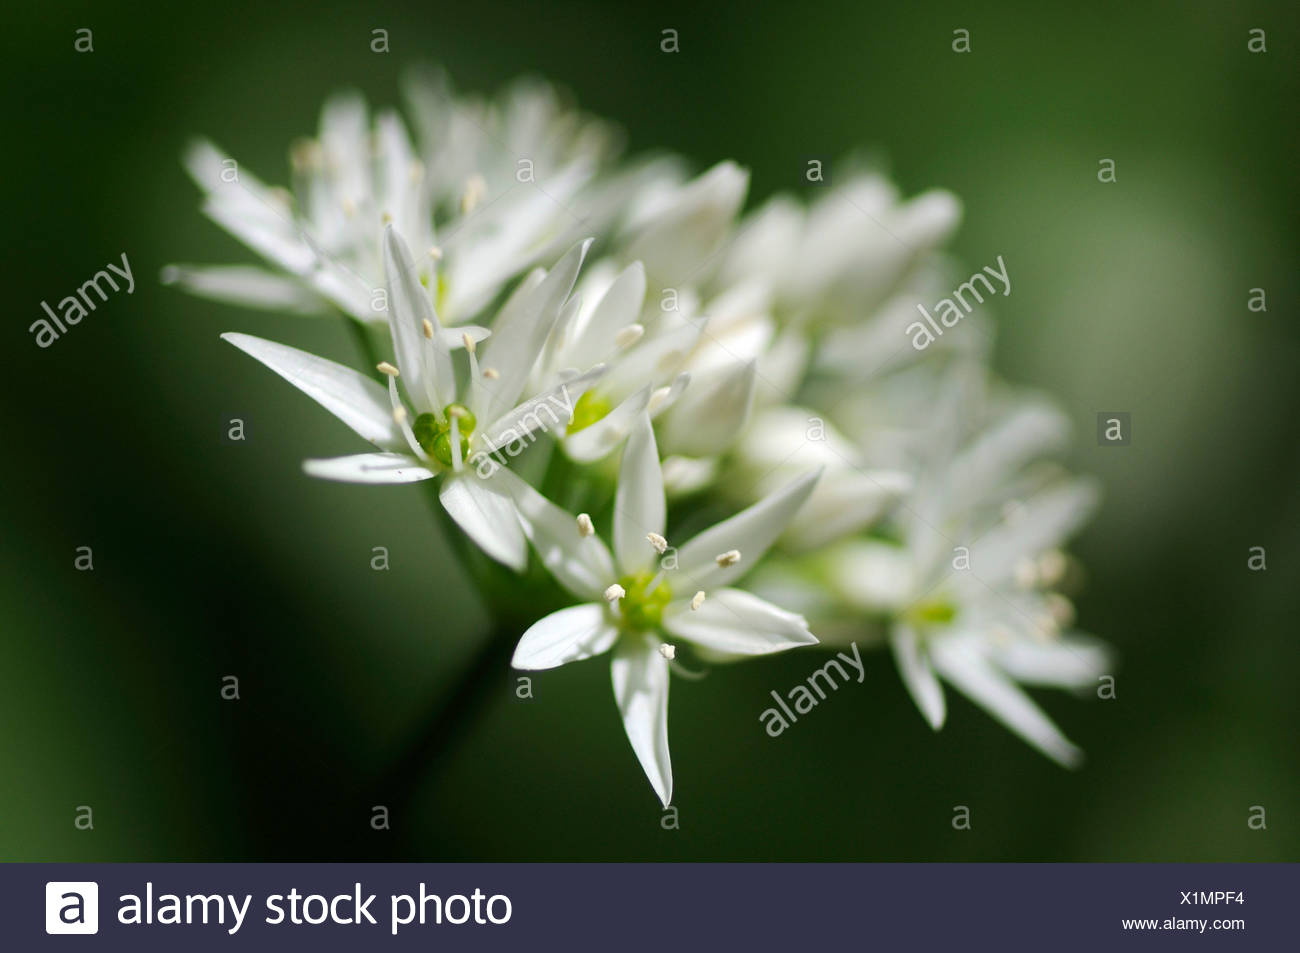 Ramson (Allium ursinum), umbel-shaped inflorescence Stock Photo